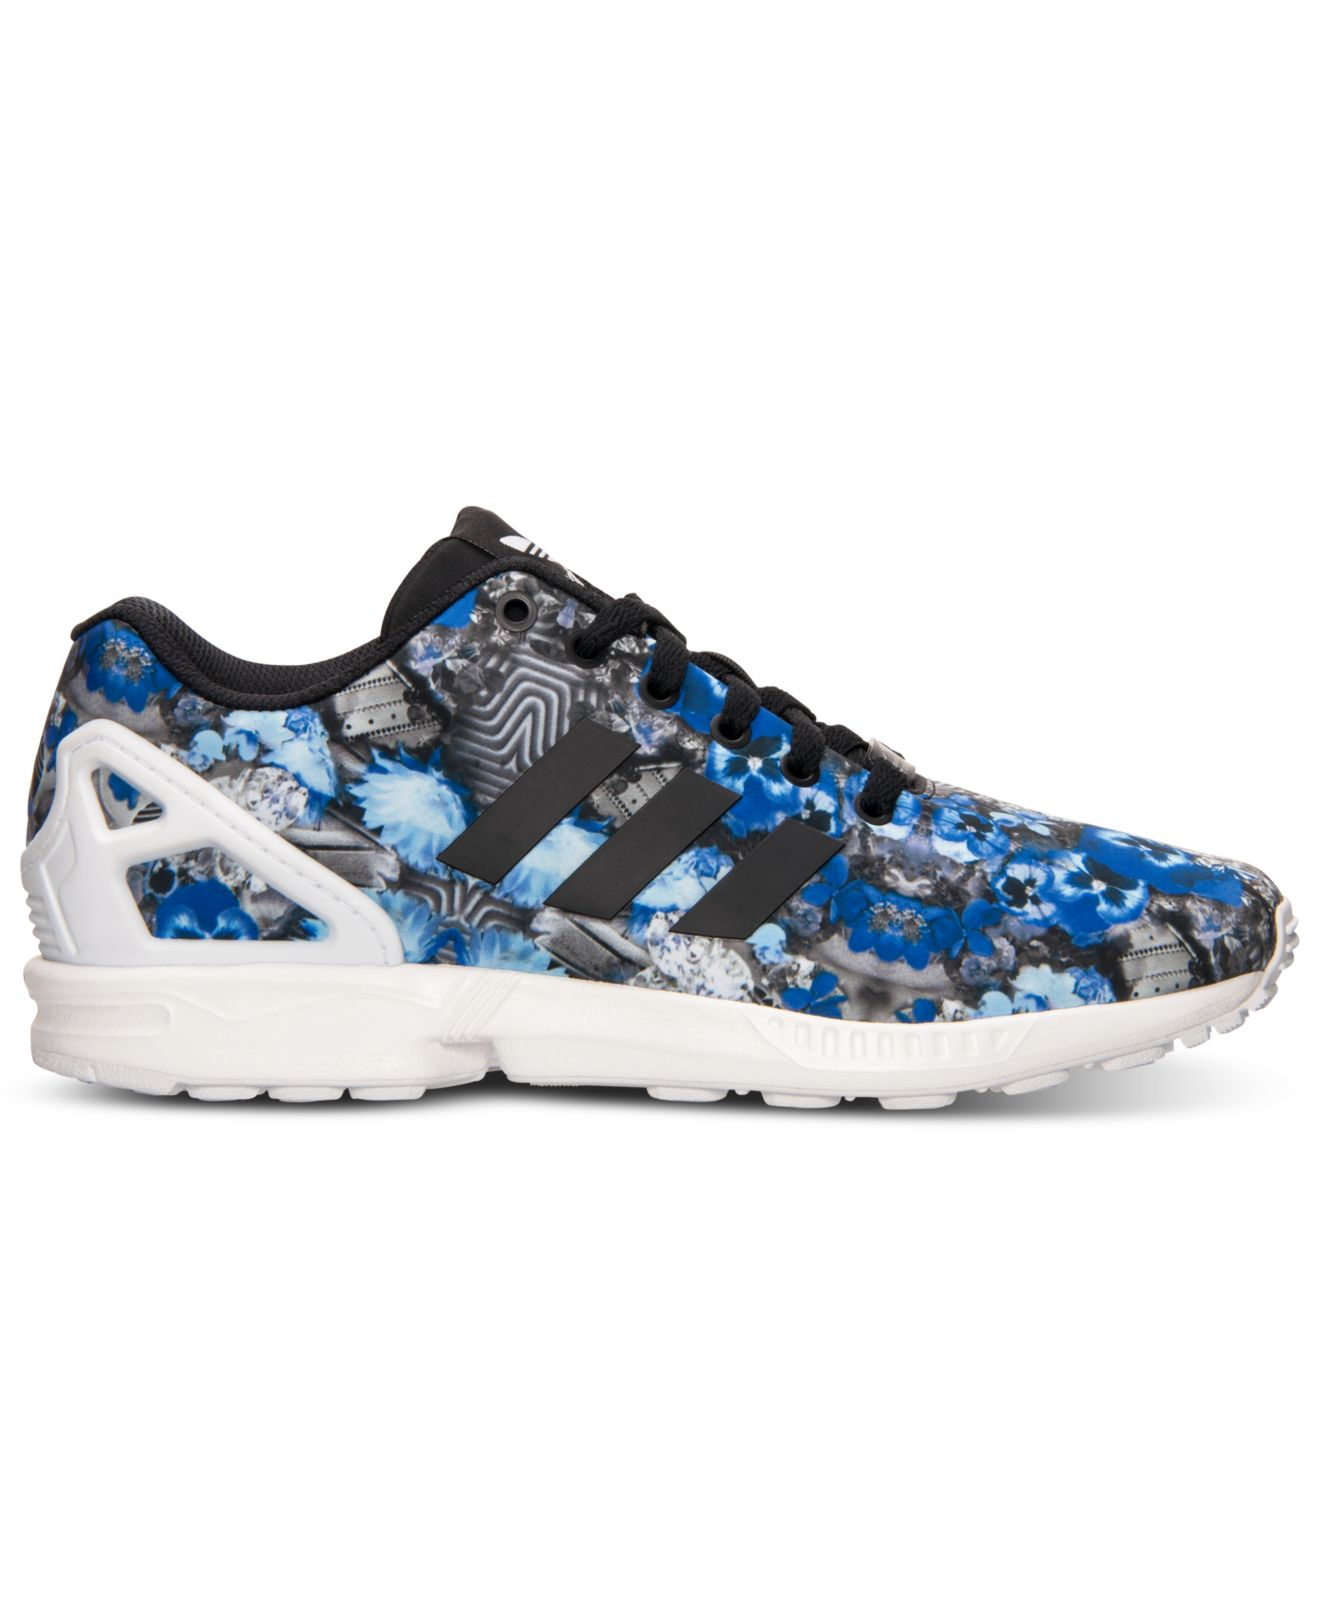 Zx Flux All Black | Zx Flux Floral | Zx Flux Weave